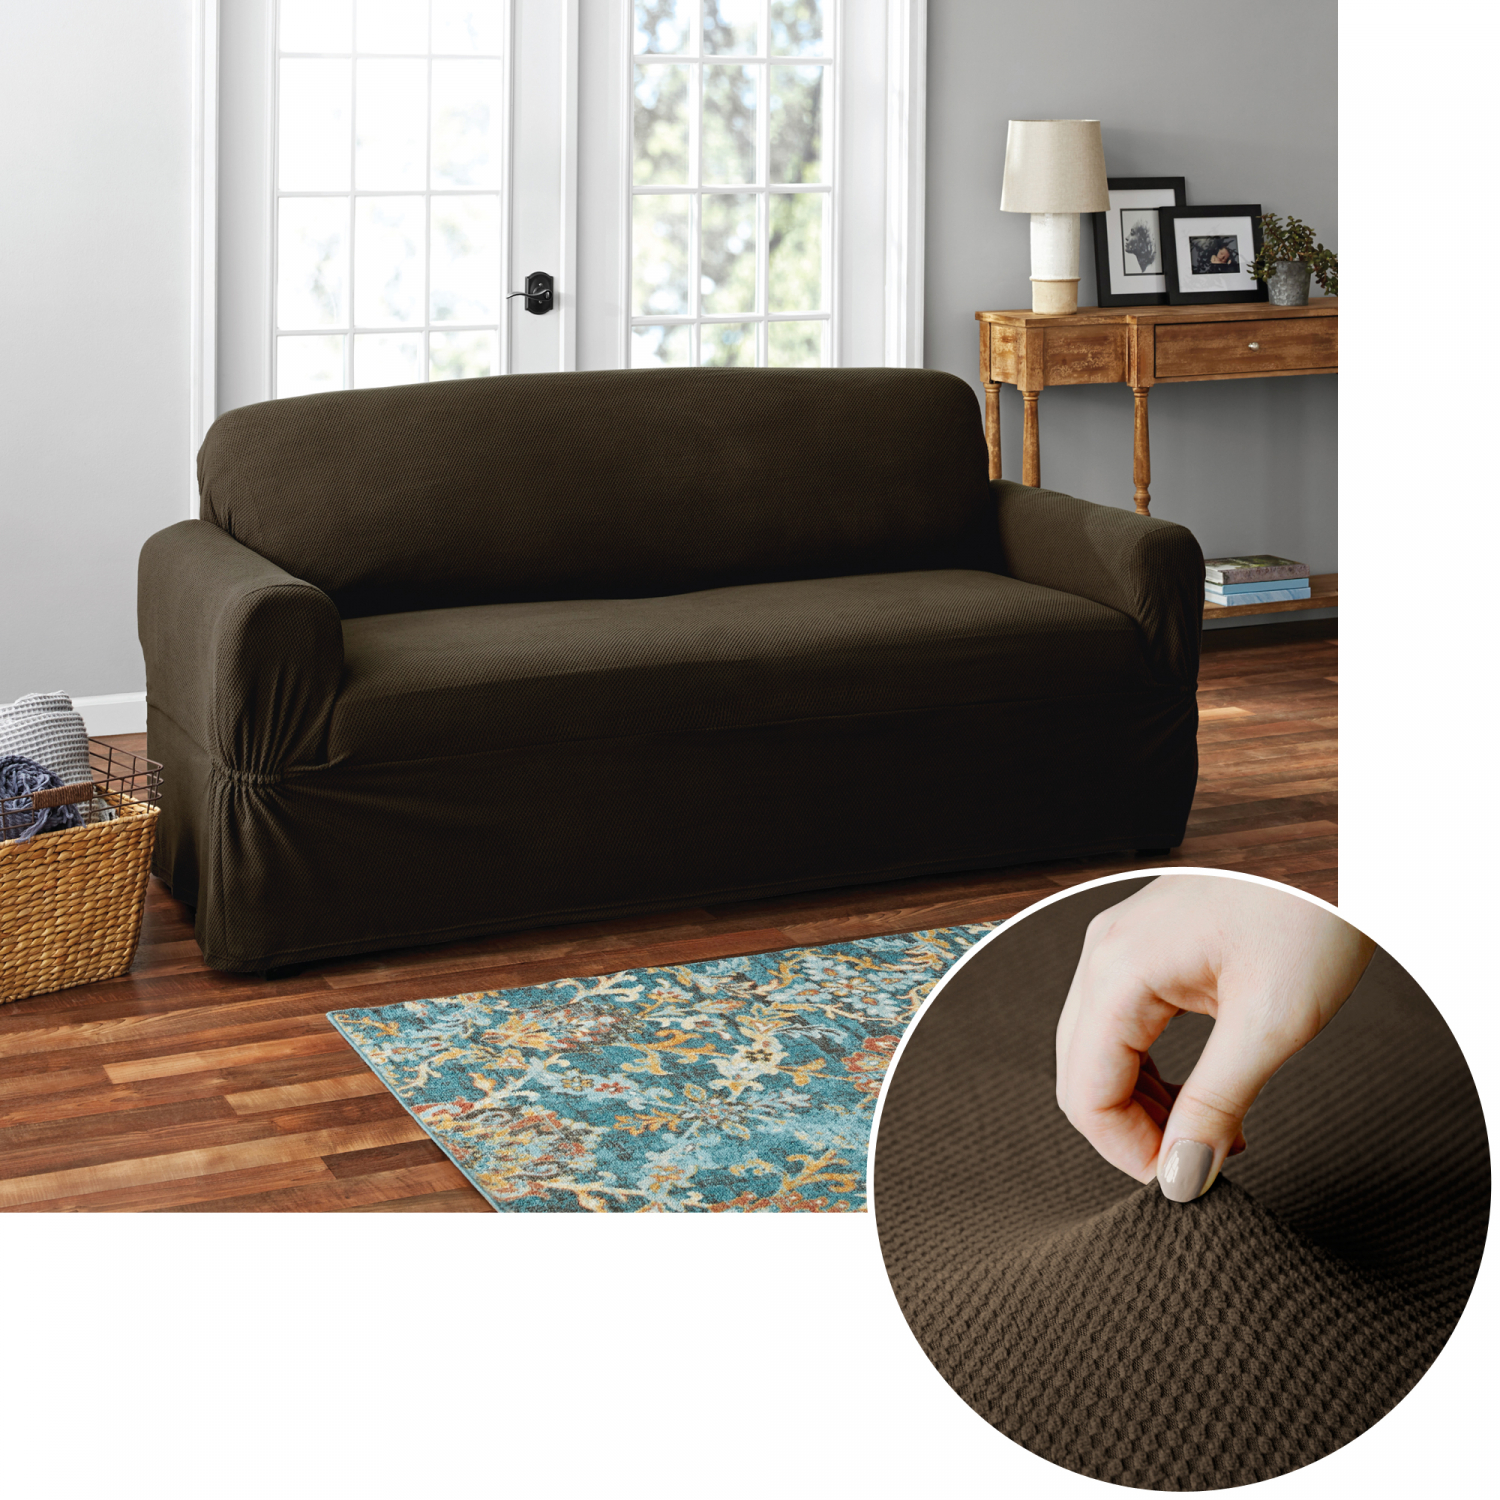 Superb Details About Mainstays Pixel 1 Piece Stretch Loveseat Furniture Cover Chocolate Camellatalisay Diy Chair Ideas Camellatalisaycom